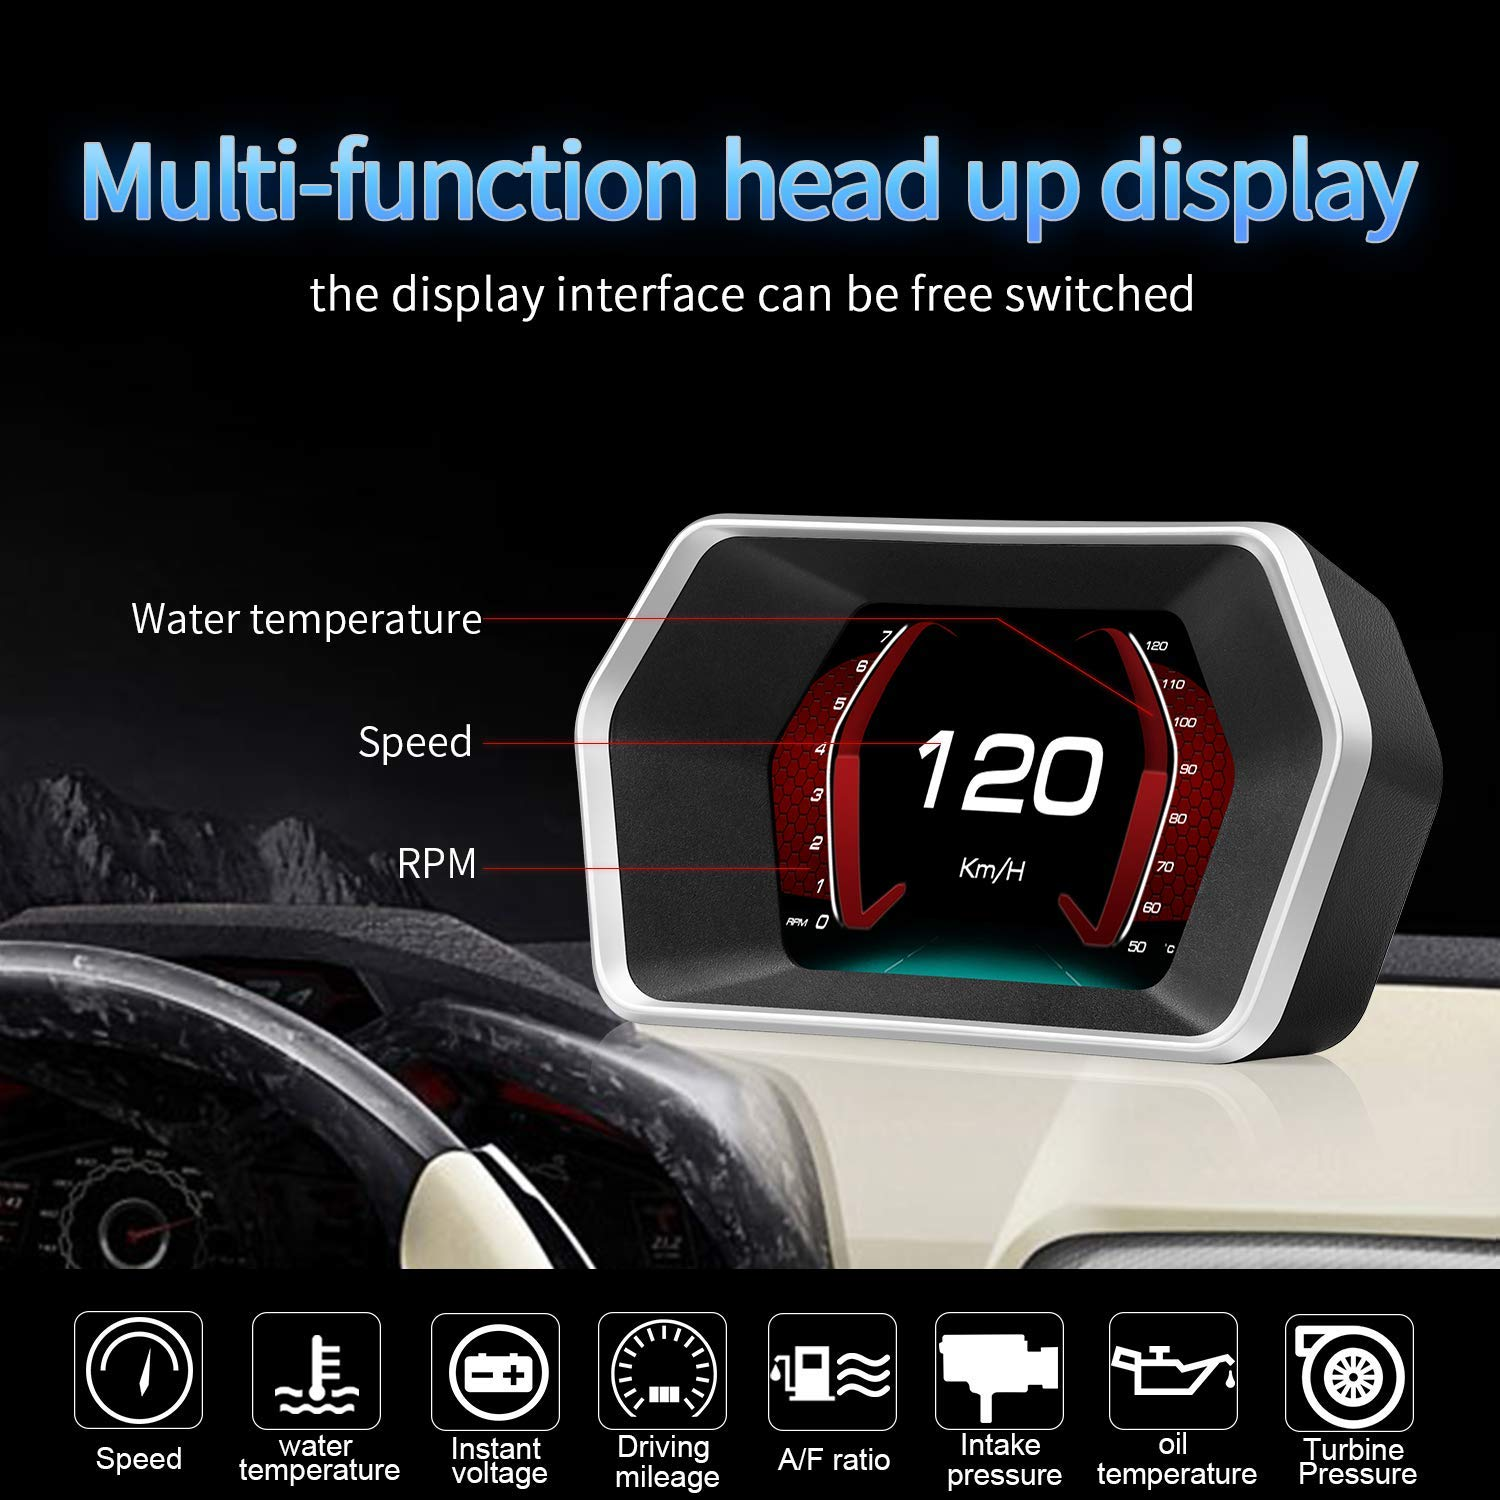 YUGUANG 6 HUD OBD2 GPS Dual System Speedometer Mileage Diagnostic Auto Obd2 HUD Display Altitude Flux Data Compass Clock Alarm Overspeed Temperature Pressure Turbine Compatible for All Cars Trucks